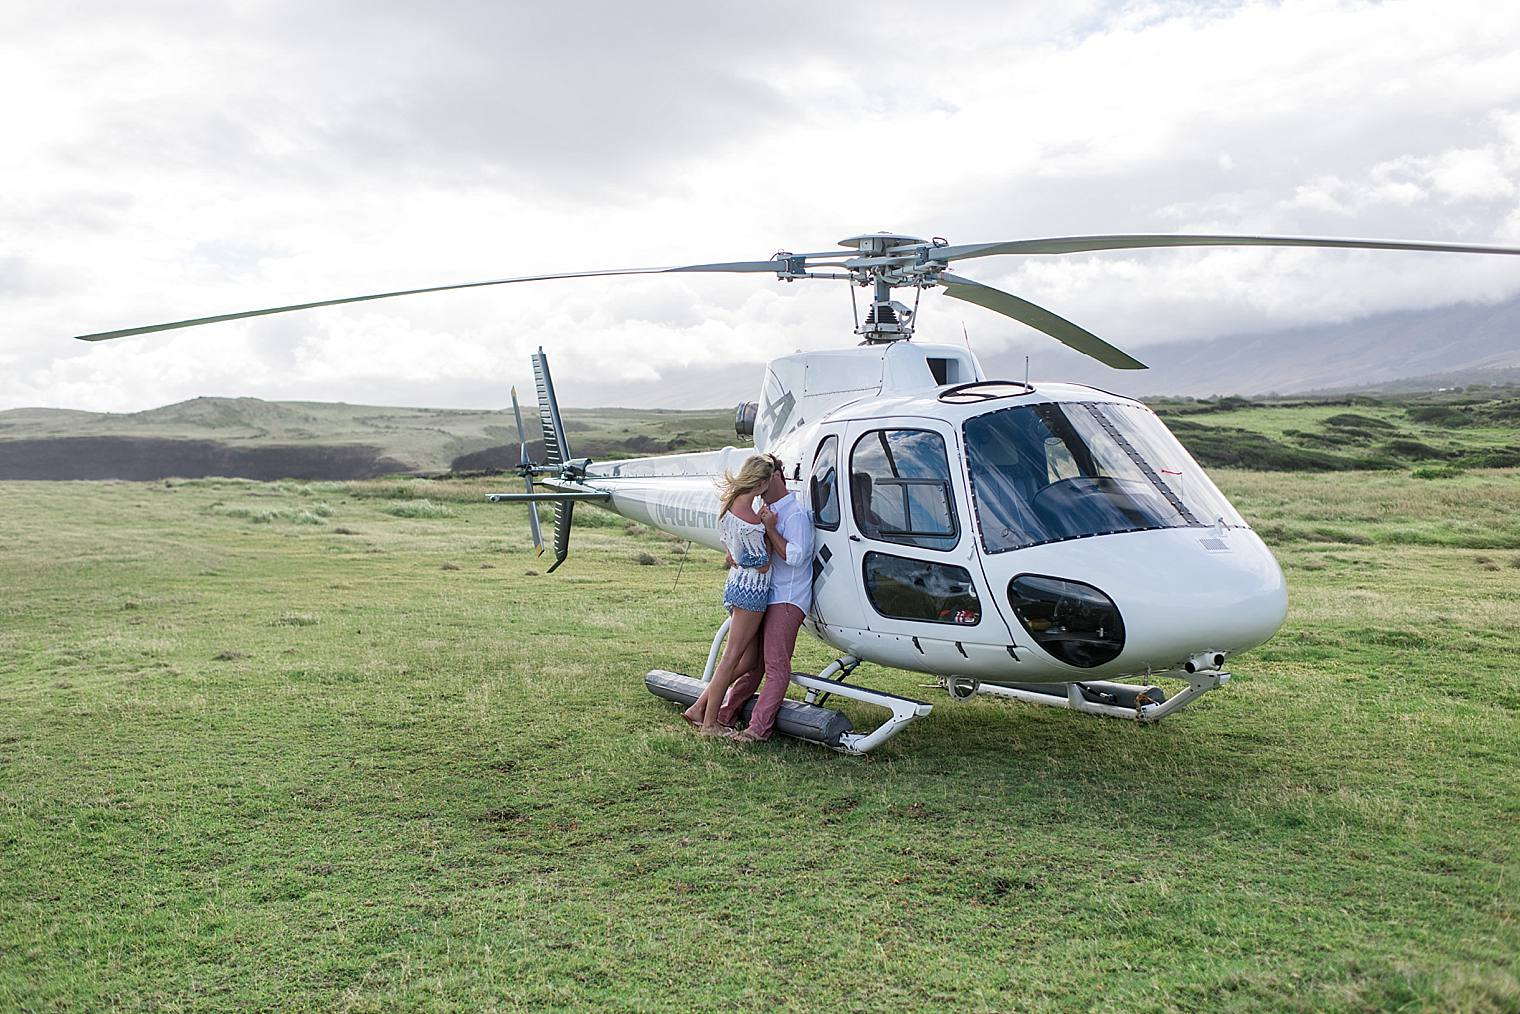 Helicopter proposal in Maui, hawaii